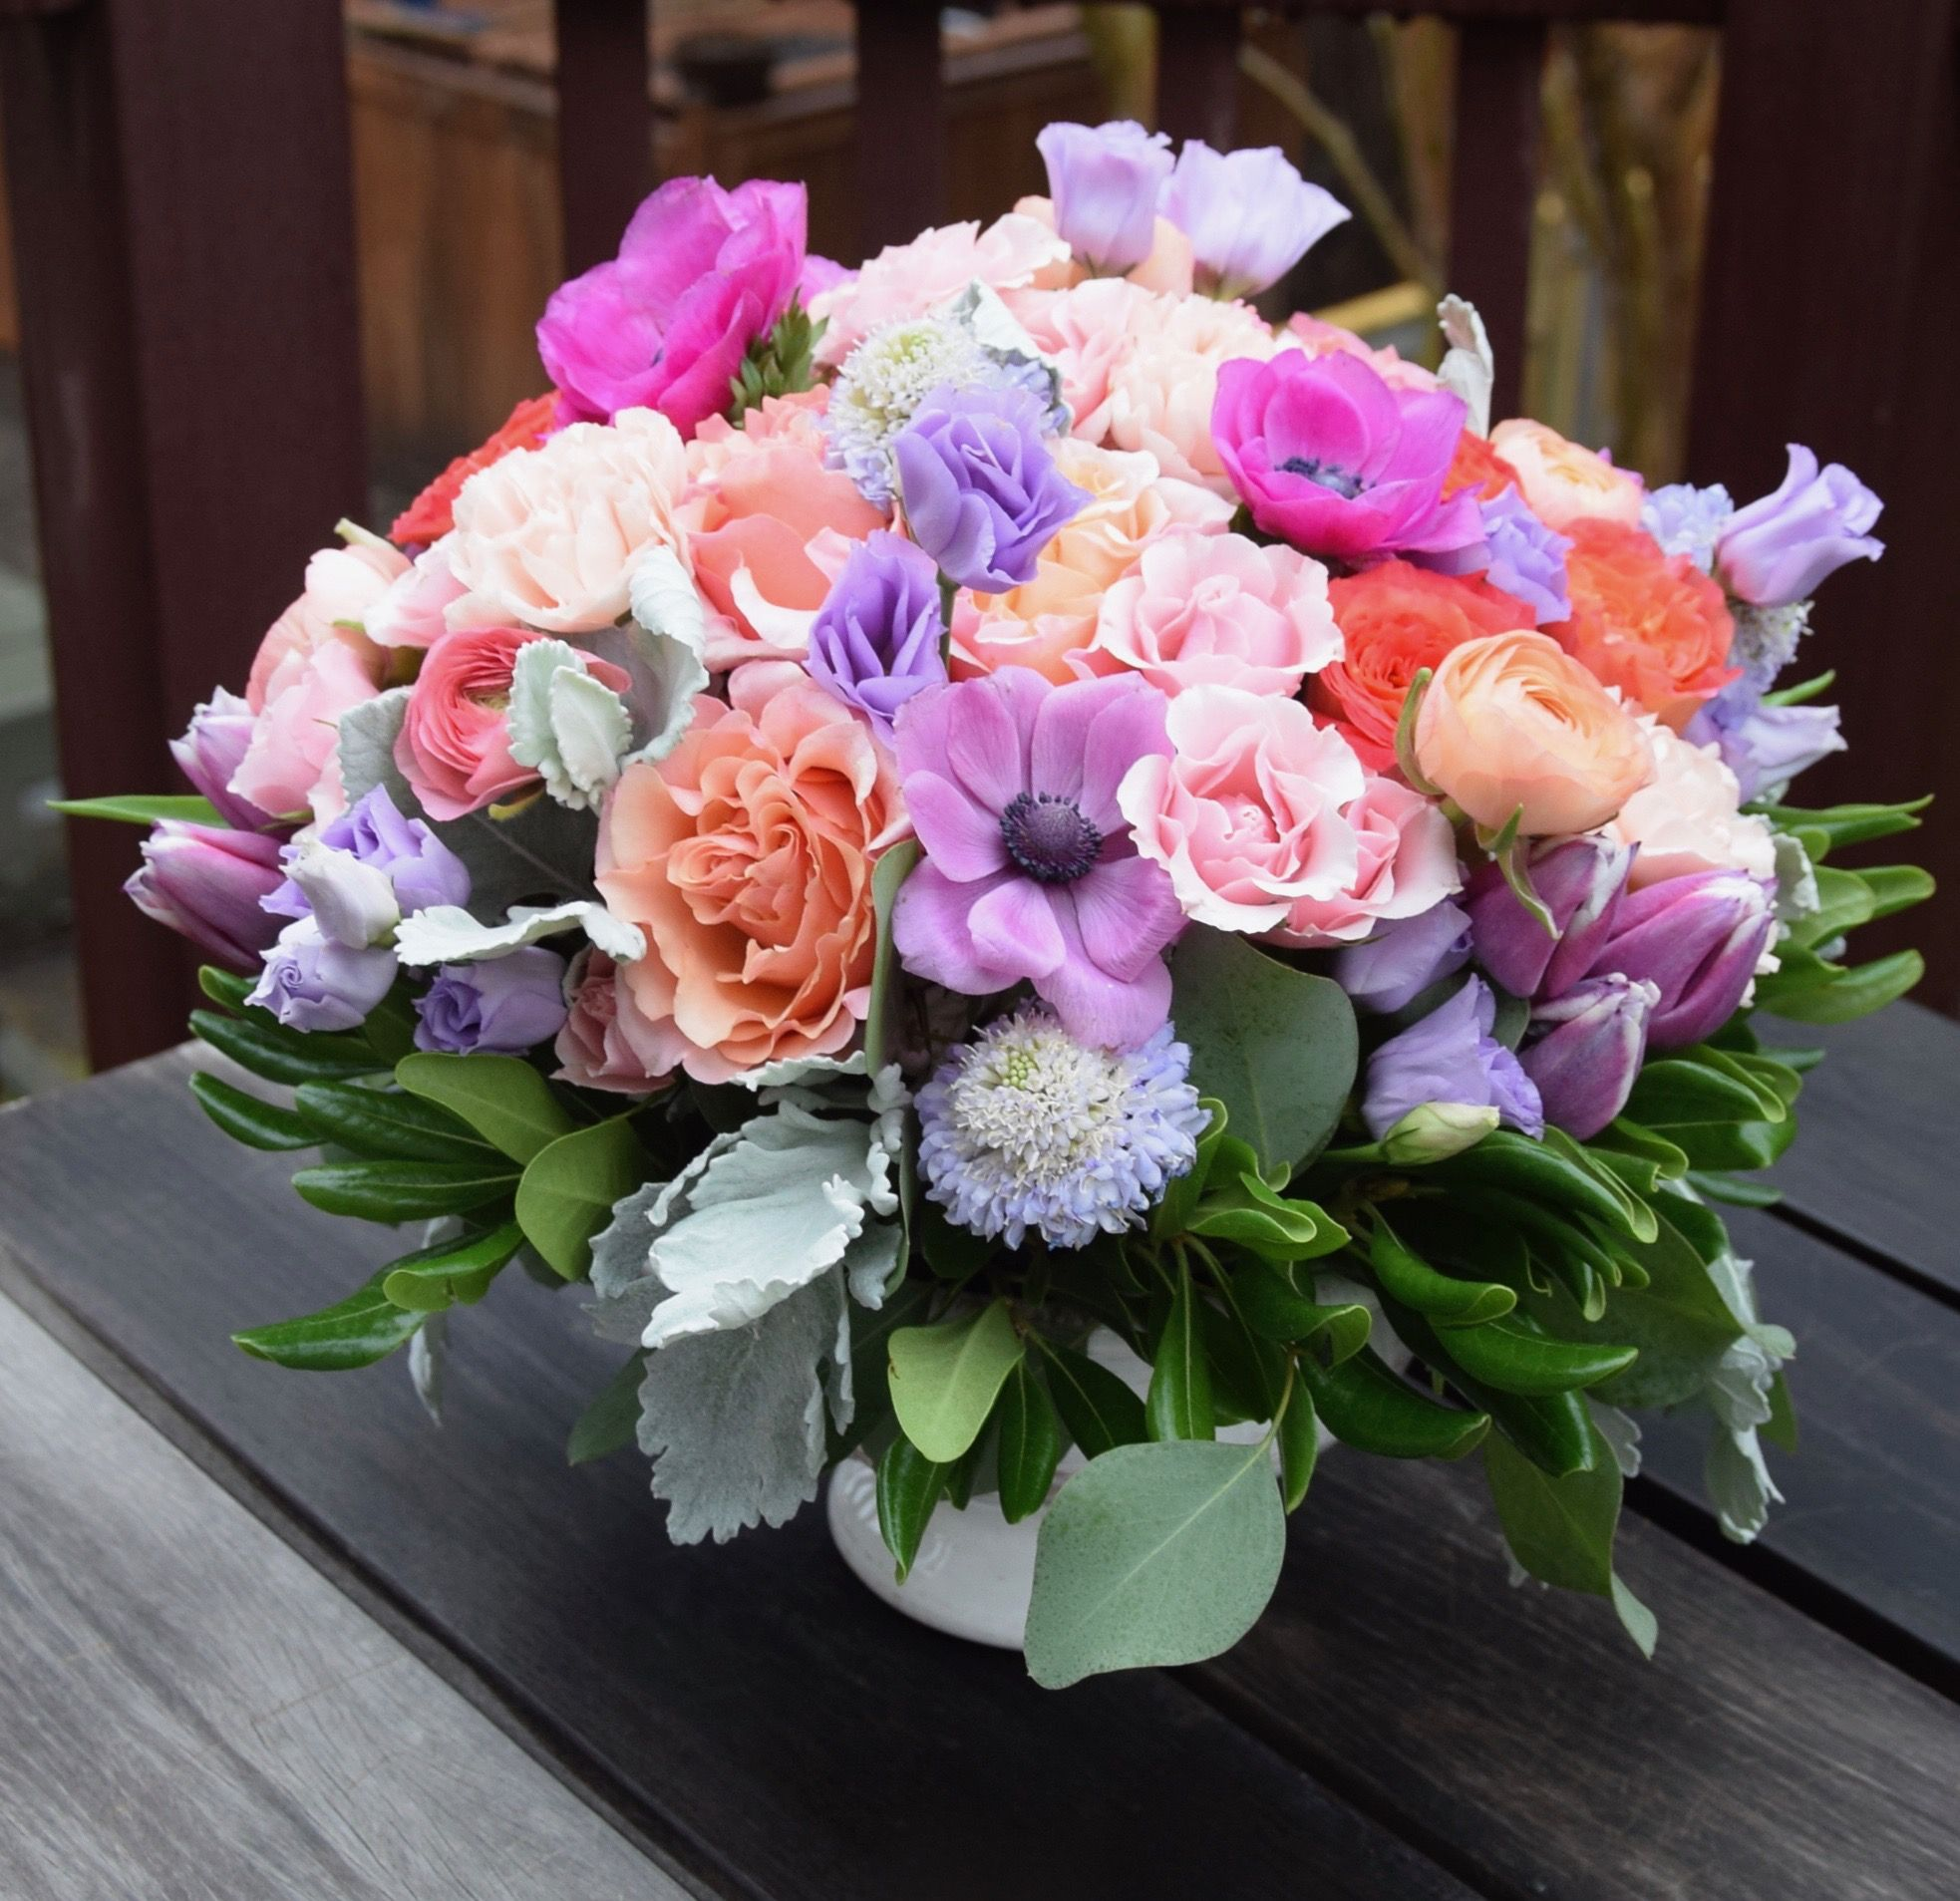 Flower Centerpiece With Pastel Color Tones Anemones Lisianthus Spray Roses Ranunculus Scabiosa Ru Flower Arrangements Flower Centerpieces Flower Delivery